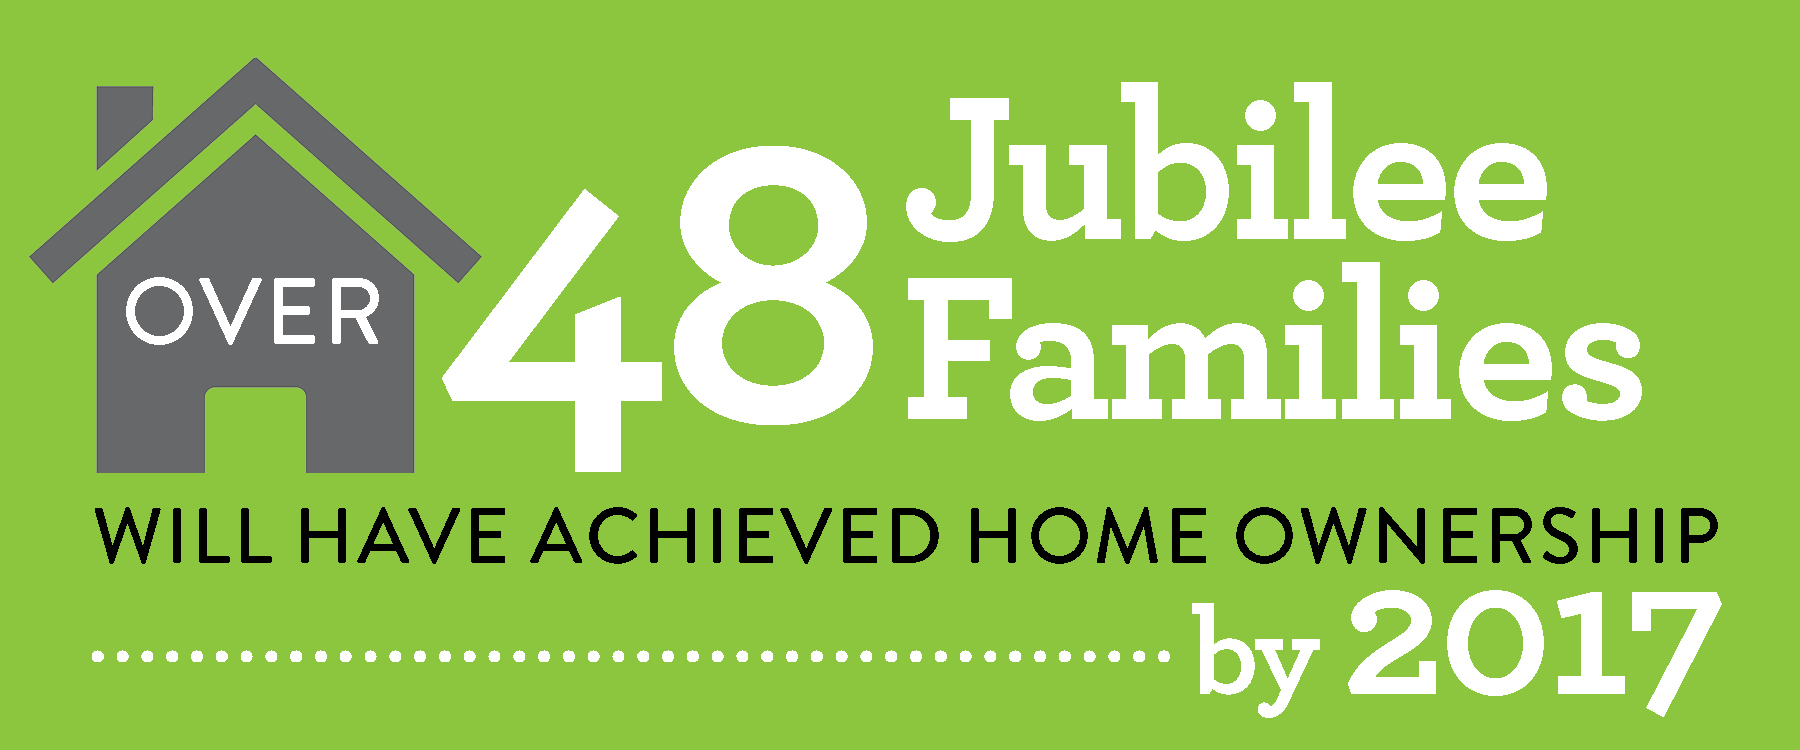 Jubilee Families home ownership